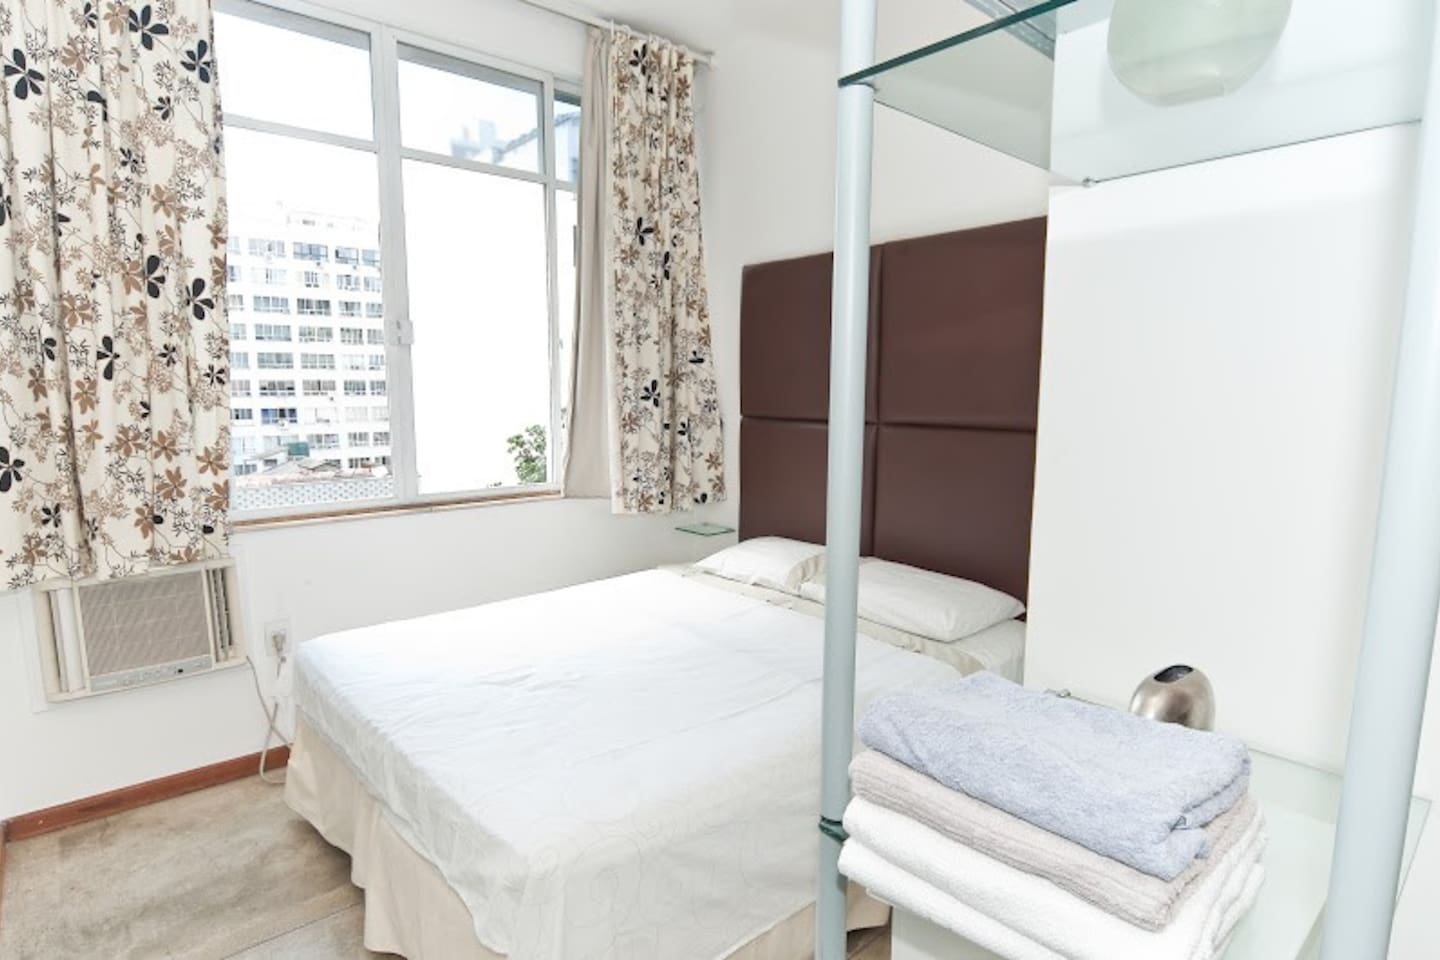 Bedroom with double size bed and air conditioning